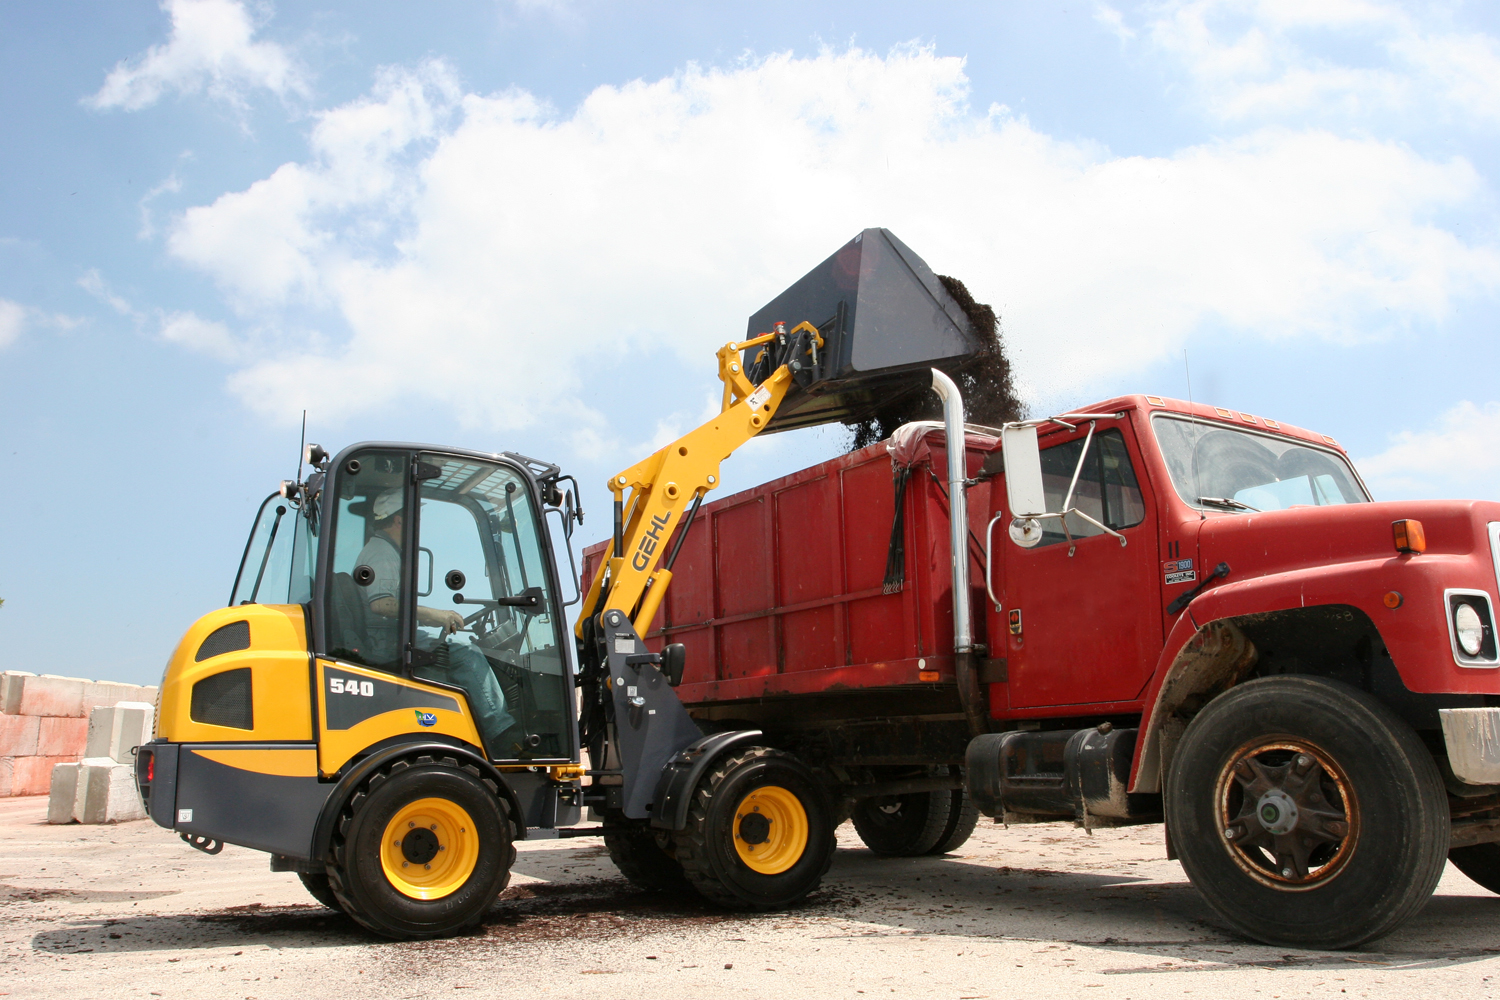 New Gehl 540 Articulated Loader